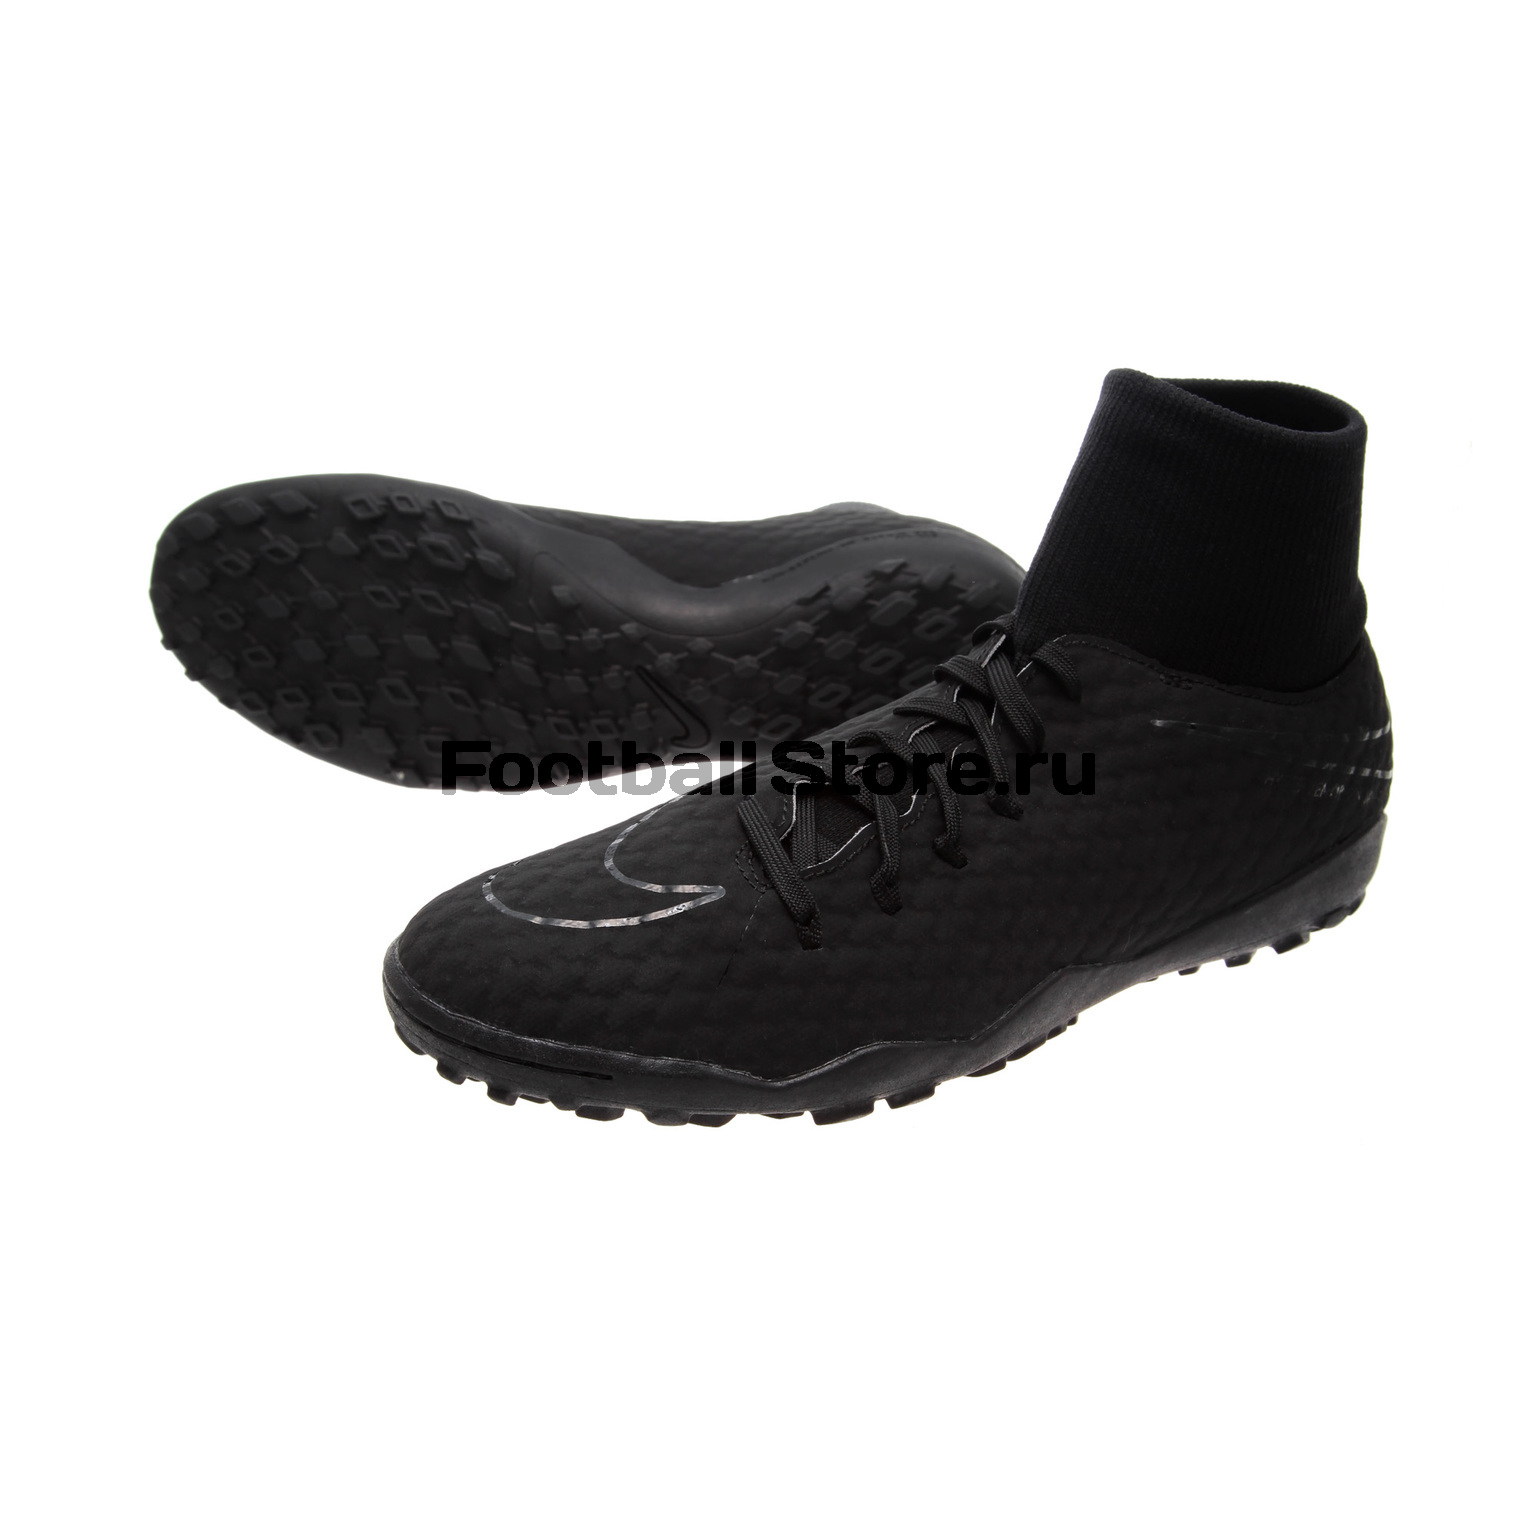 Шиповки Nike HypervenomX Phelon 3 DF TF 917769-001 детские бутсы nike бутсы nike jr phantom 3 elite df fg ah7292 081